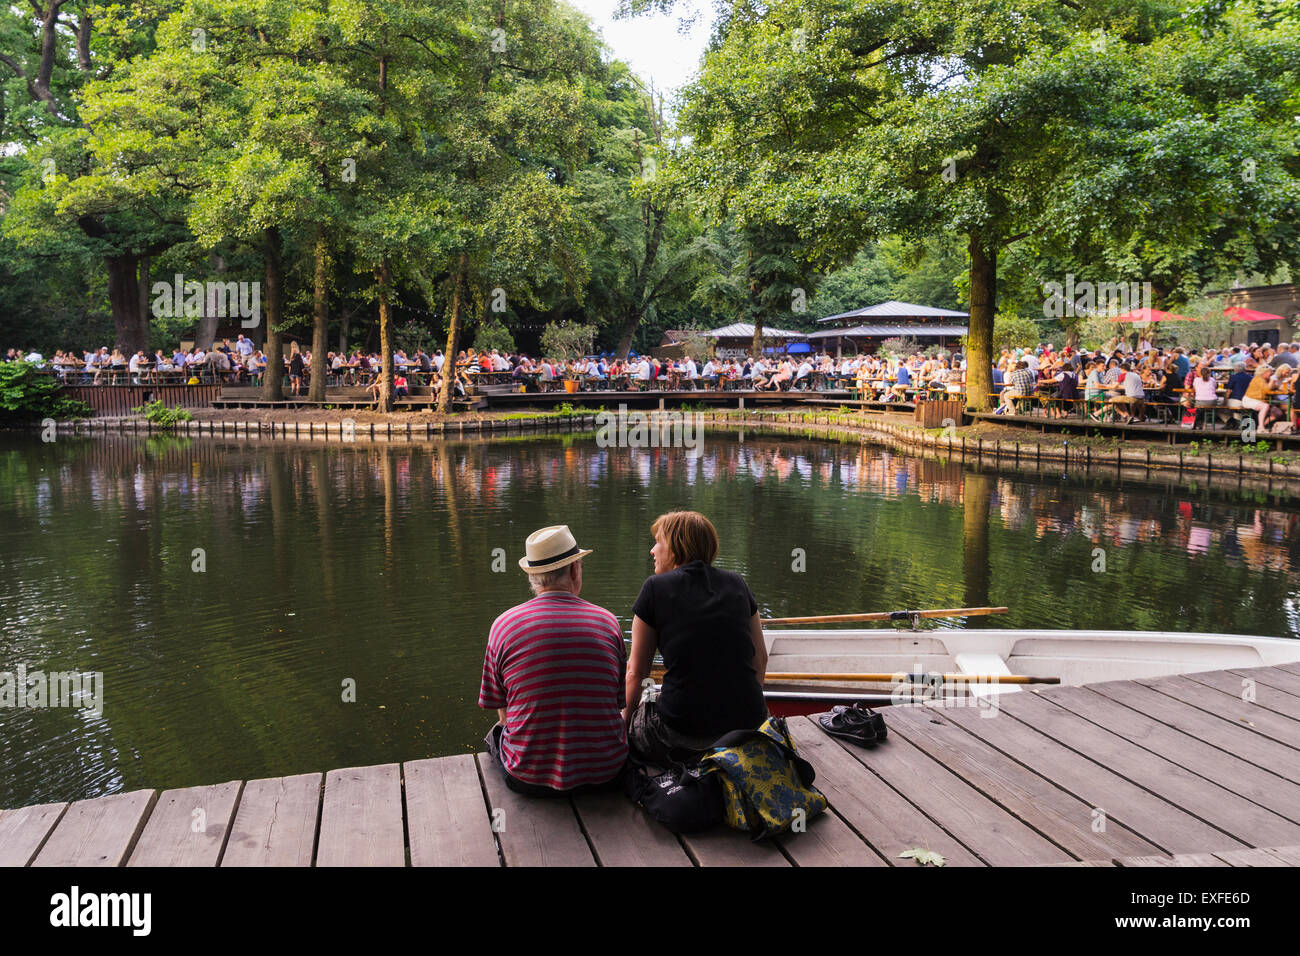 Busy beer garden in summer at Cafe am Neuen See in Tiergarten park in Berlin Germany - Stock Image